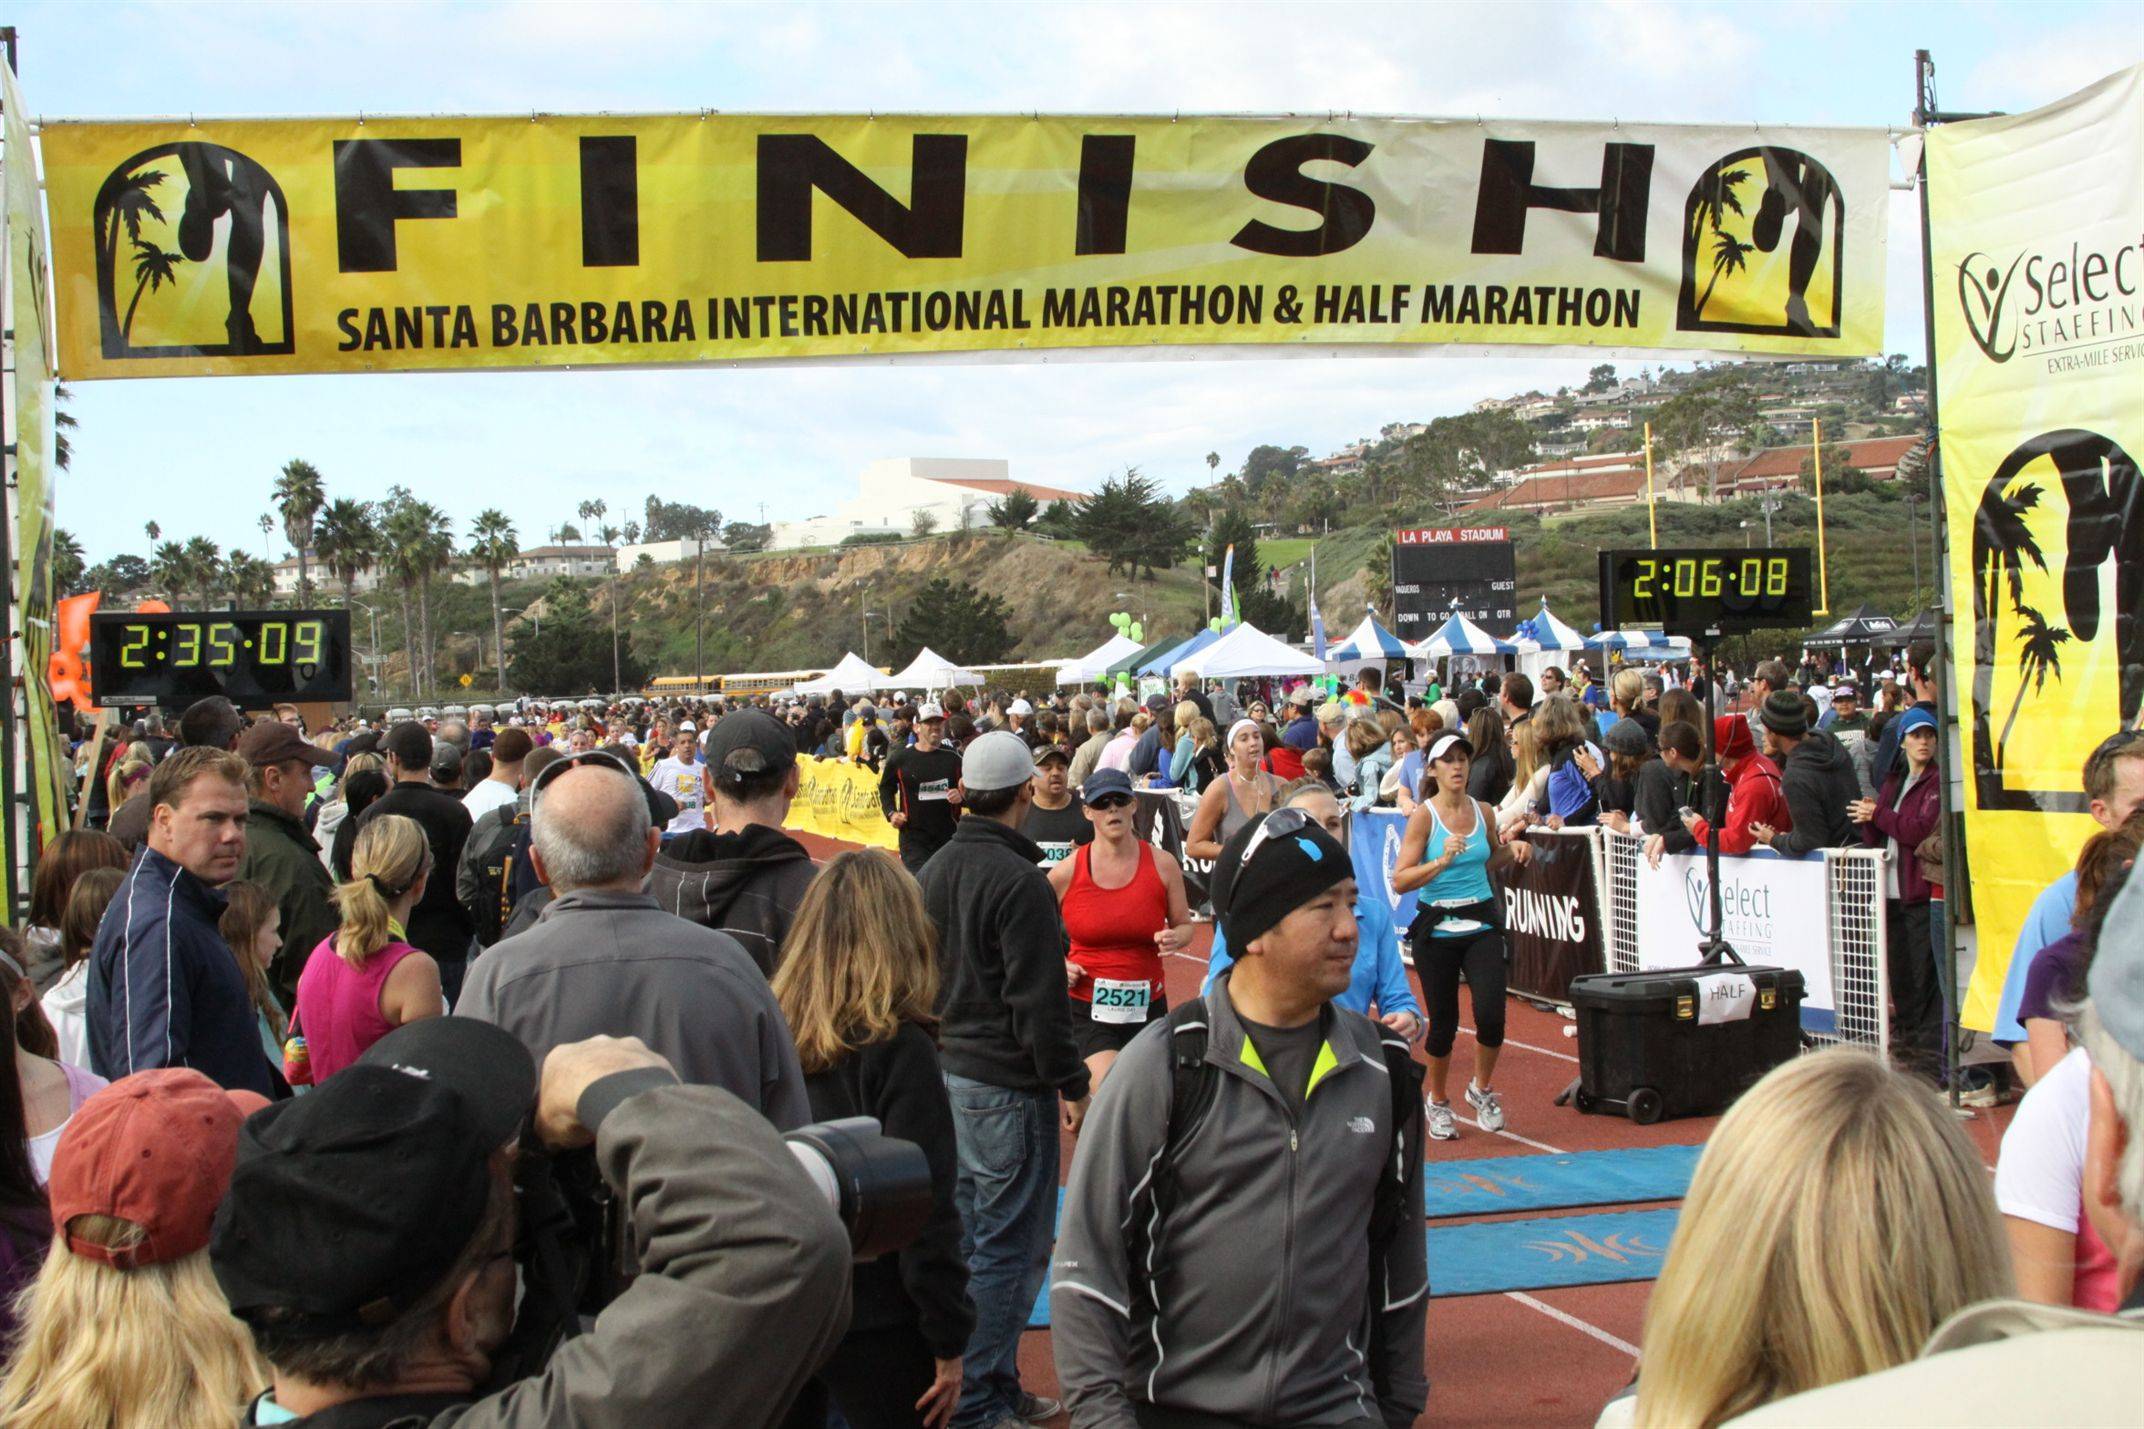 Santa Barbara International Marathon